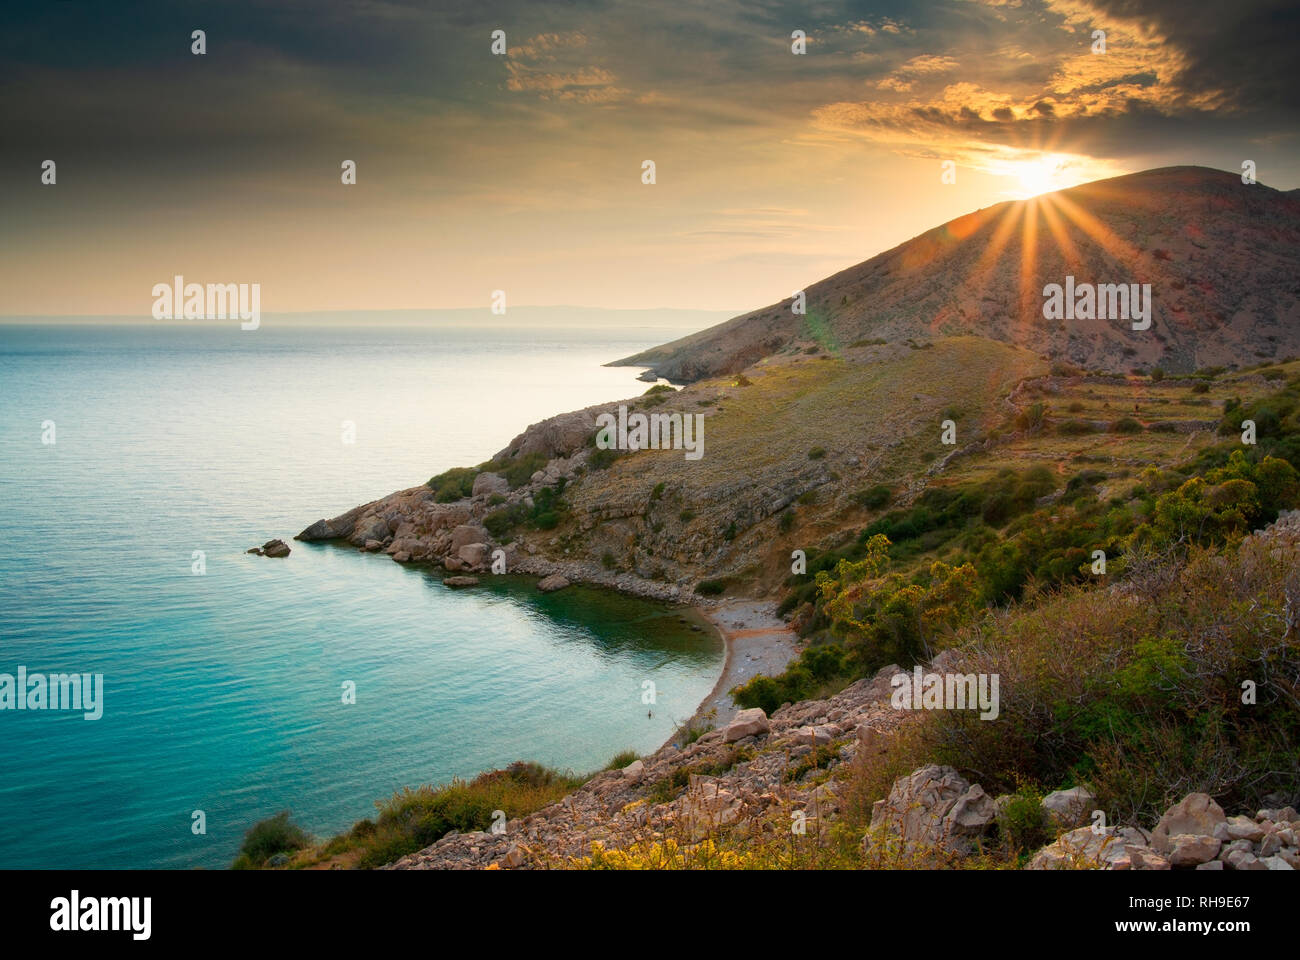 Bay near Stara Baska, Krk Island, Croatia - Stock Image